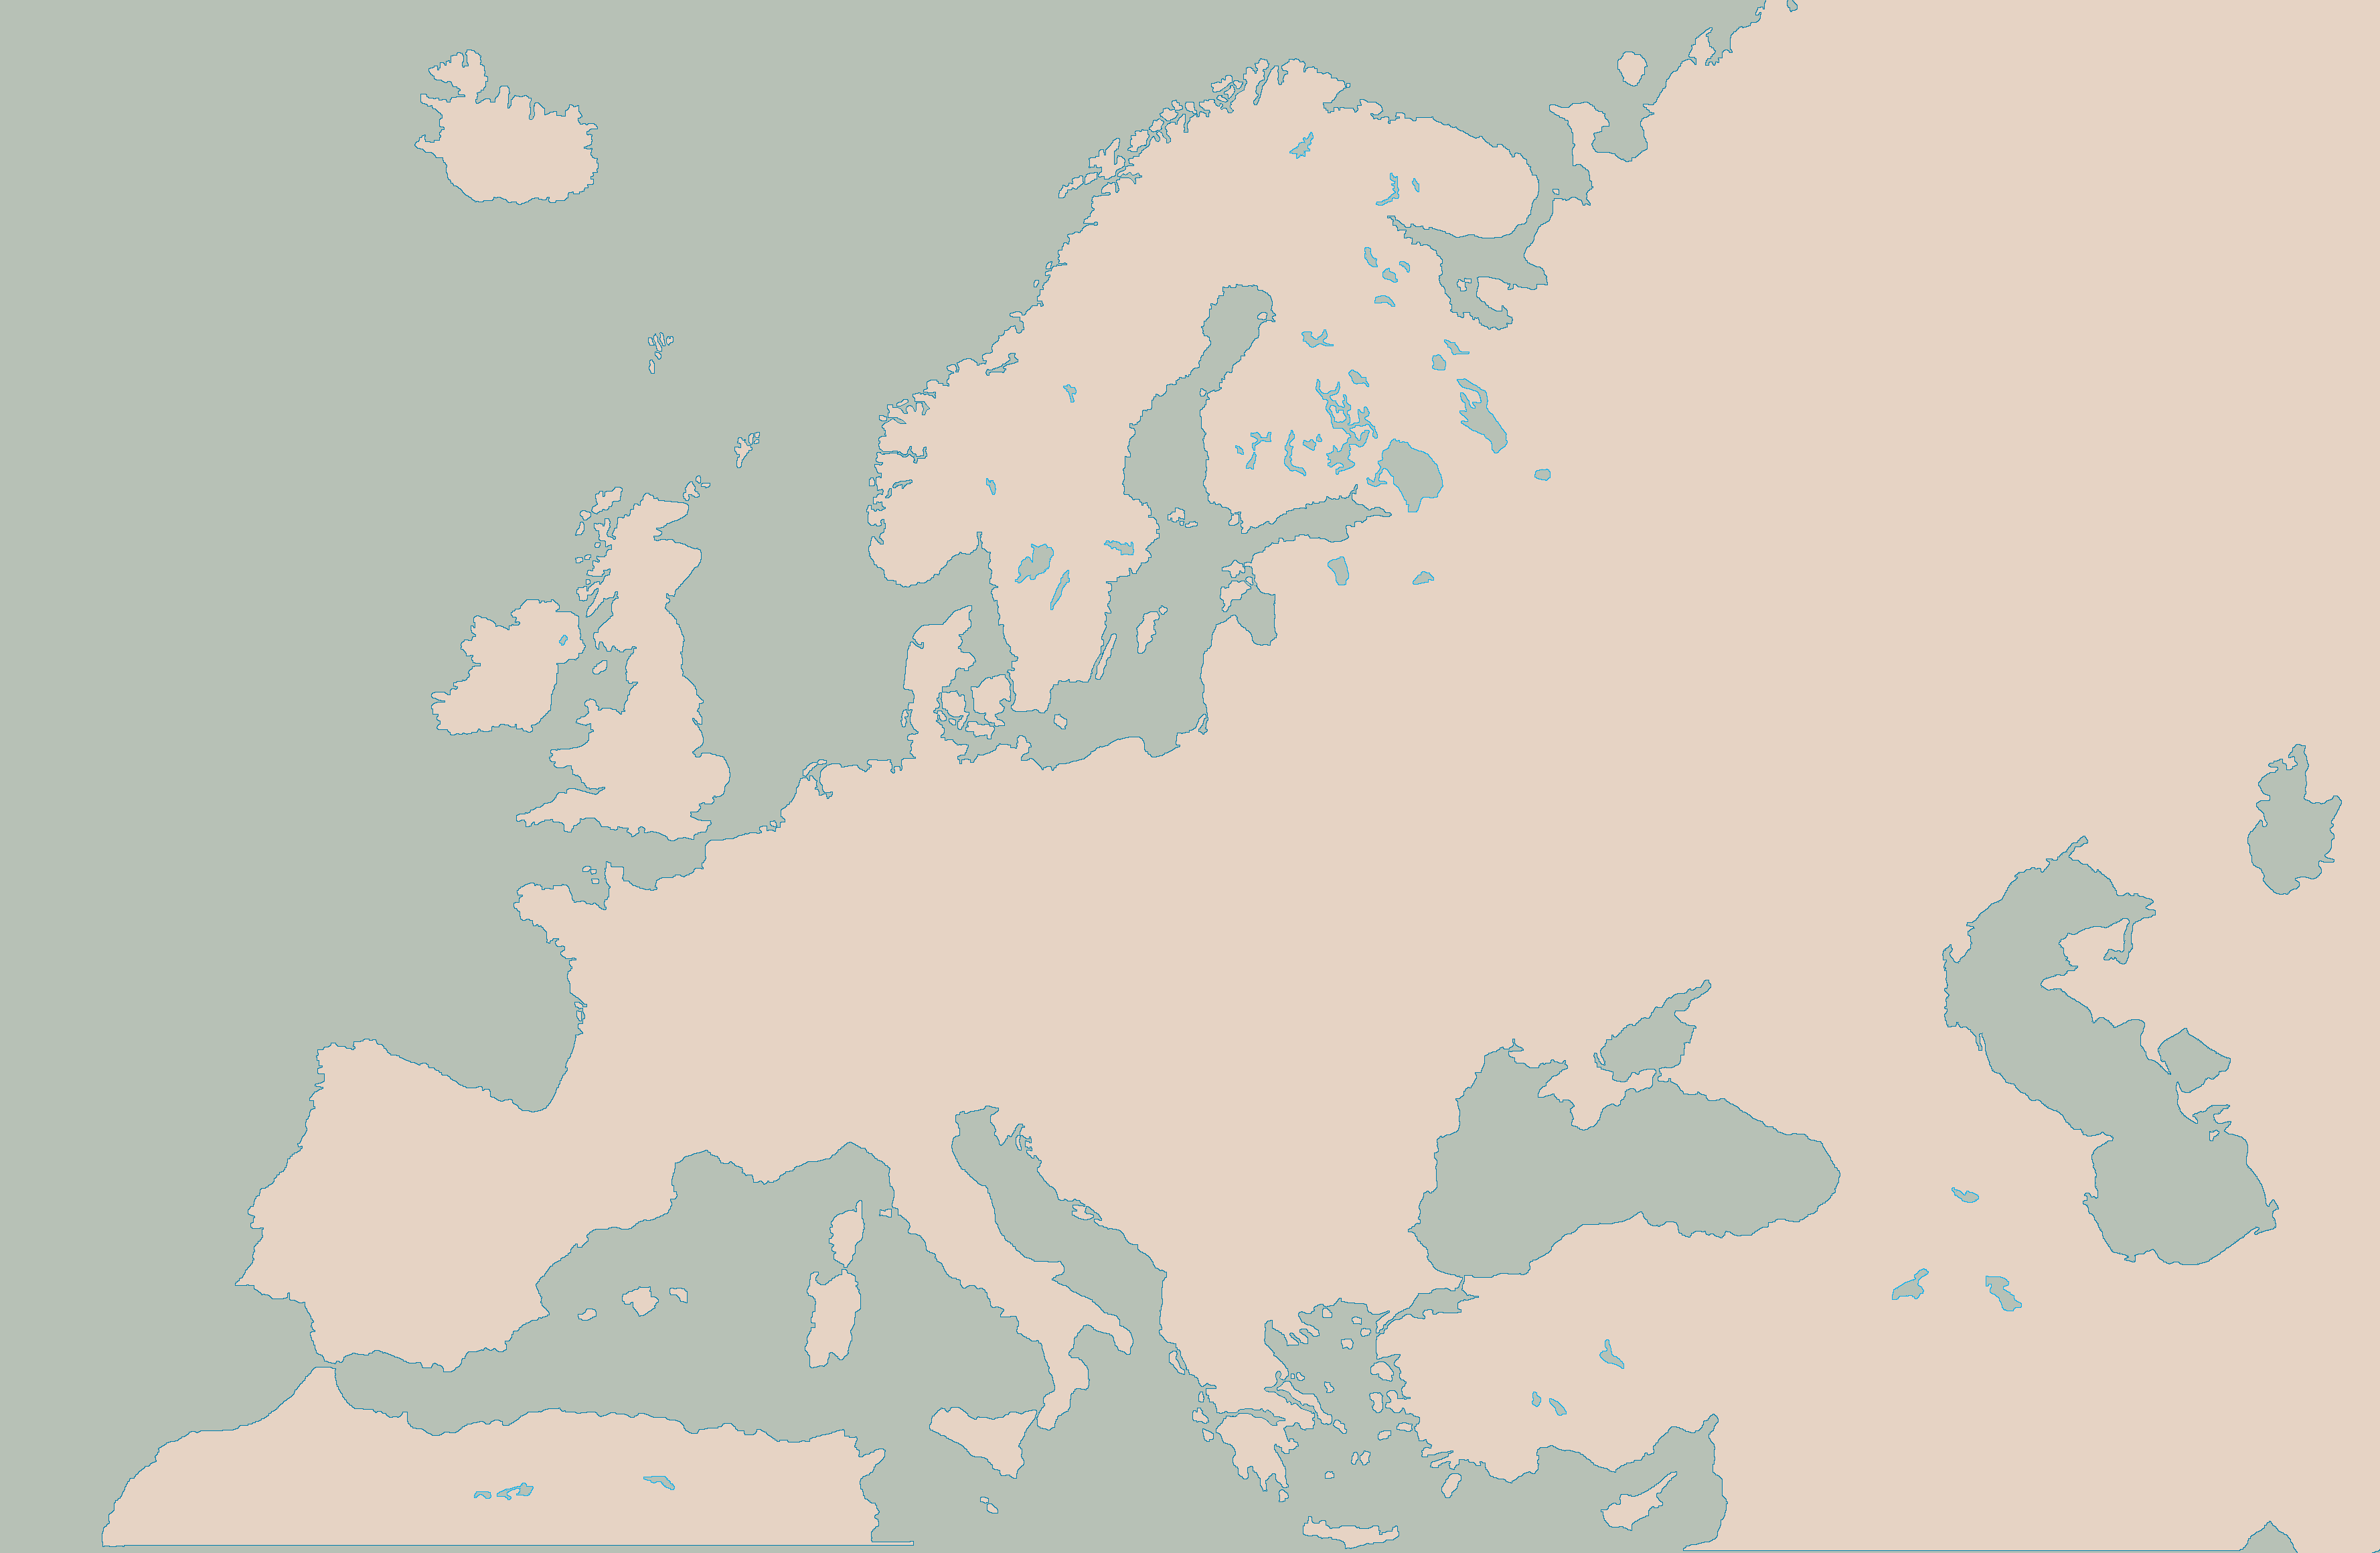 Blank Map of Europe clean by Kuusinen on DeviantArt